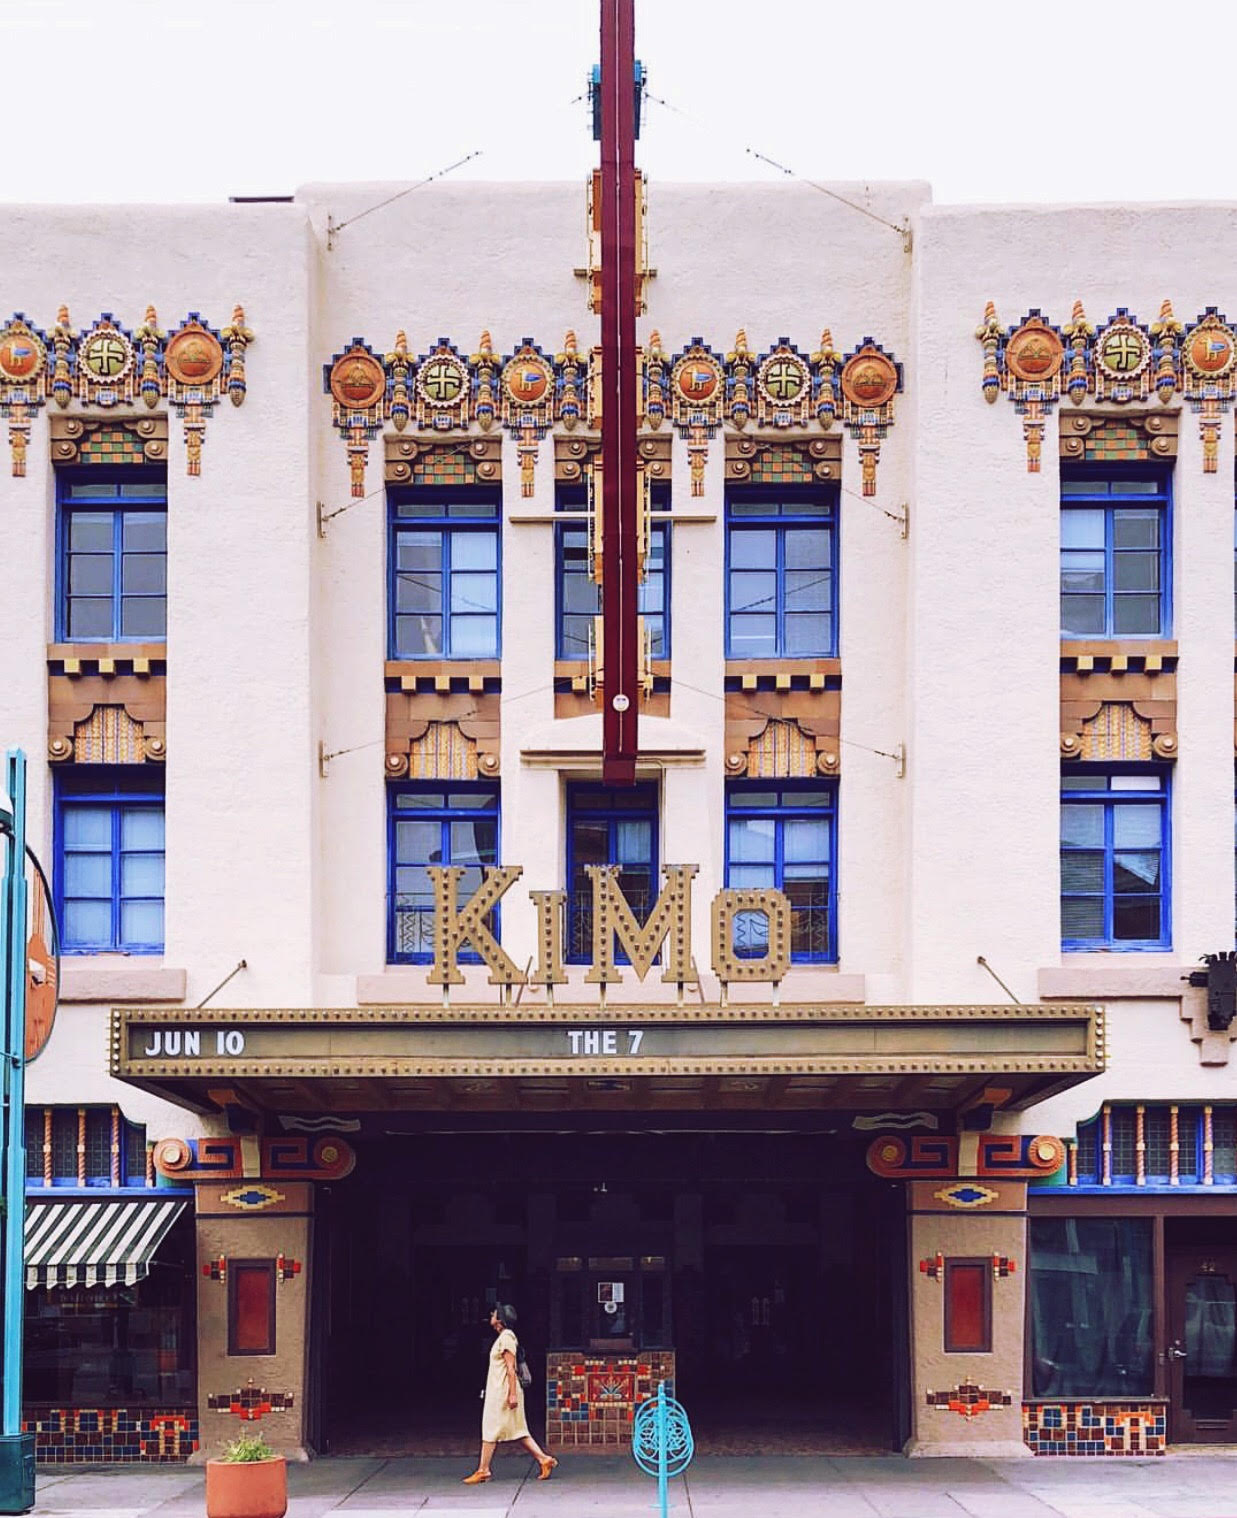 The historic   KiMo Theatre   was completed in 1927 along Route 66 in Albuquerque, NM. The stunning structure is a rare example of 'Pueblo Deco' architecture, a style that combined elements of Art Deco and Pueblo Revival design.The KiMo was originally owned by  Oreste Bachechi , an Italian immigrant and entrepreneur who achieved his own American Dream after starting several successful businesses in New Mexico, inspiring other Italians to try their luck in Albuquerque, and then assisting his countrymen by loaning them money for passage and helping them find work when they arrived.  Photo by  Matthew Dickey